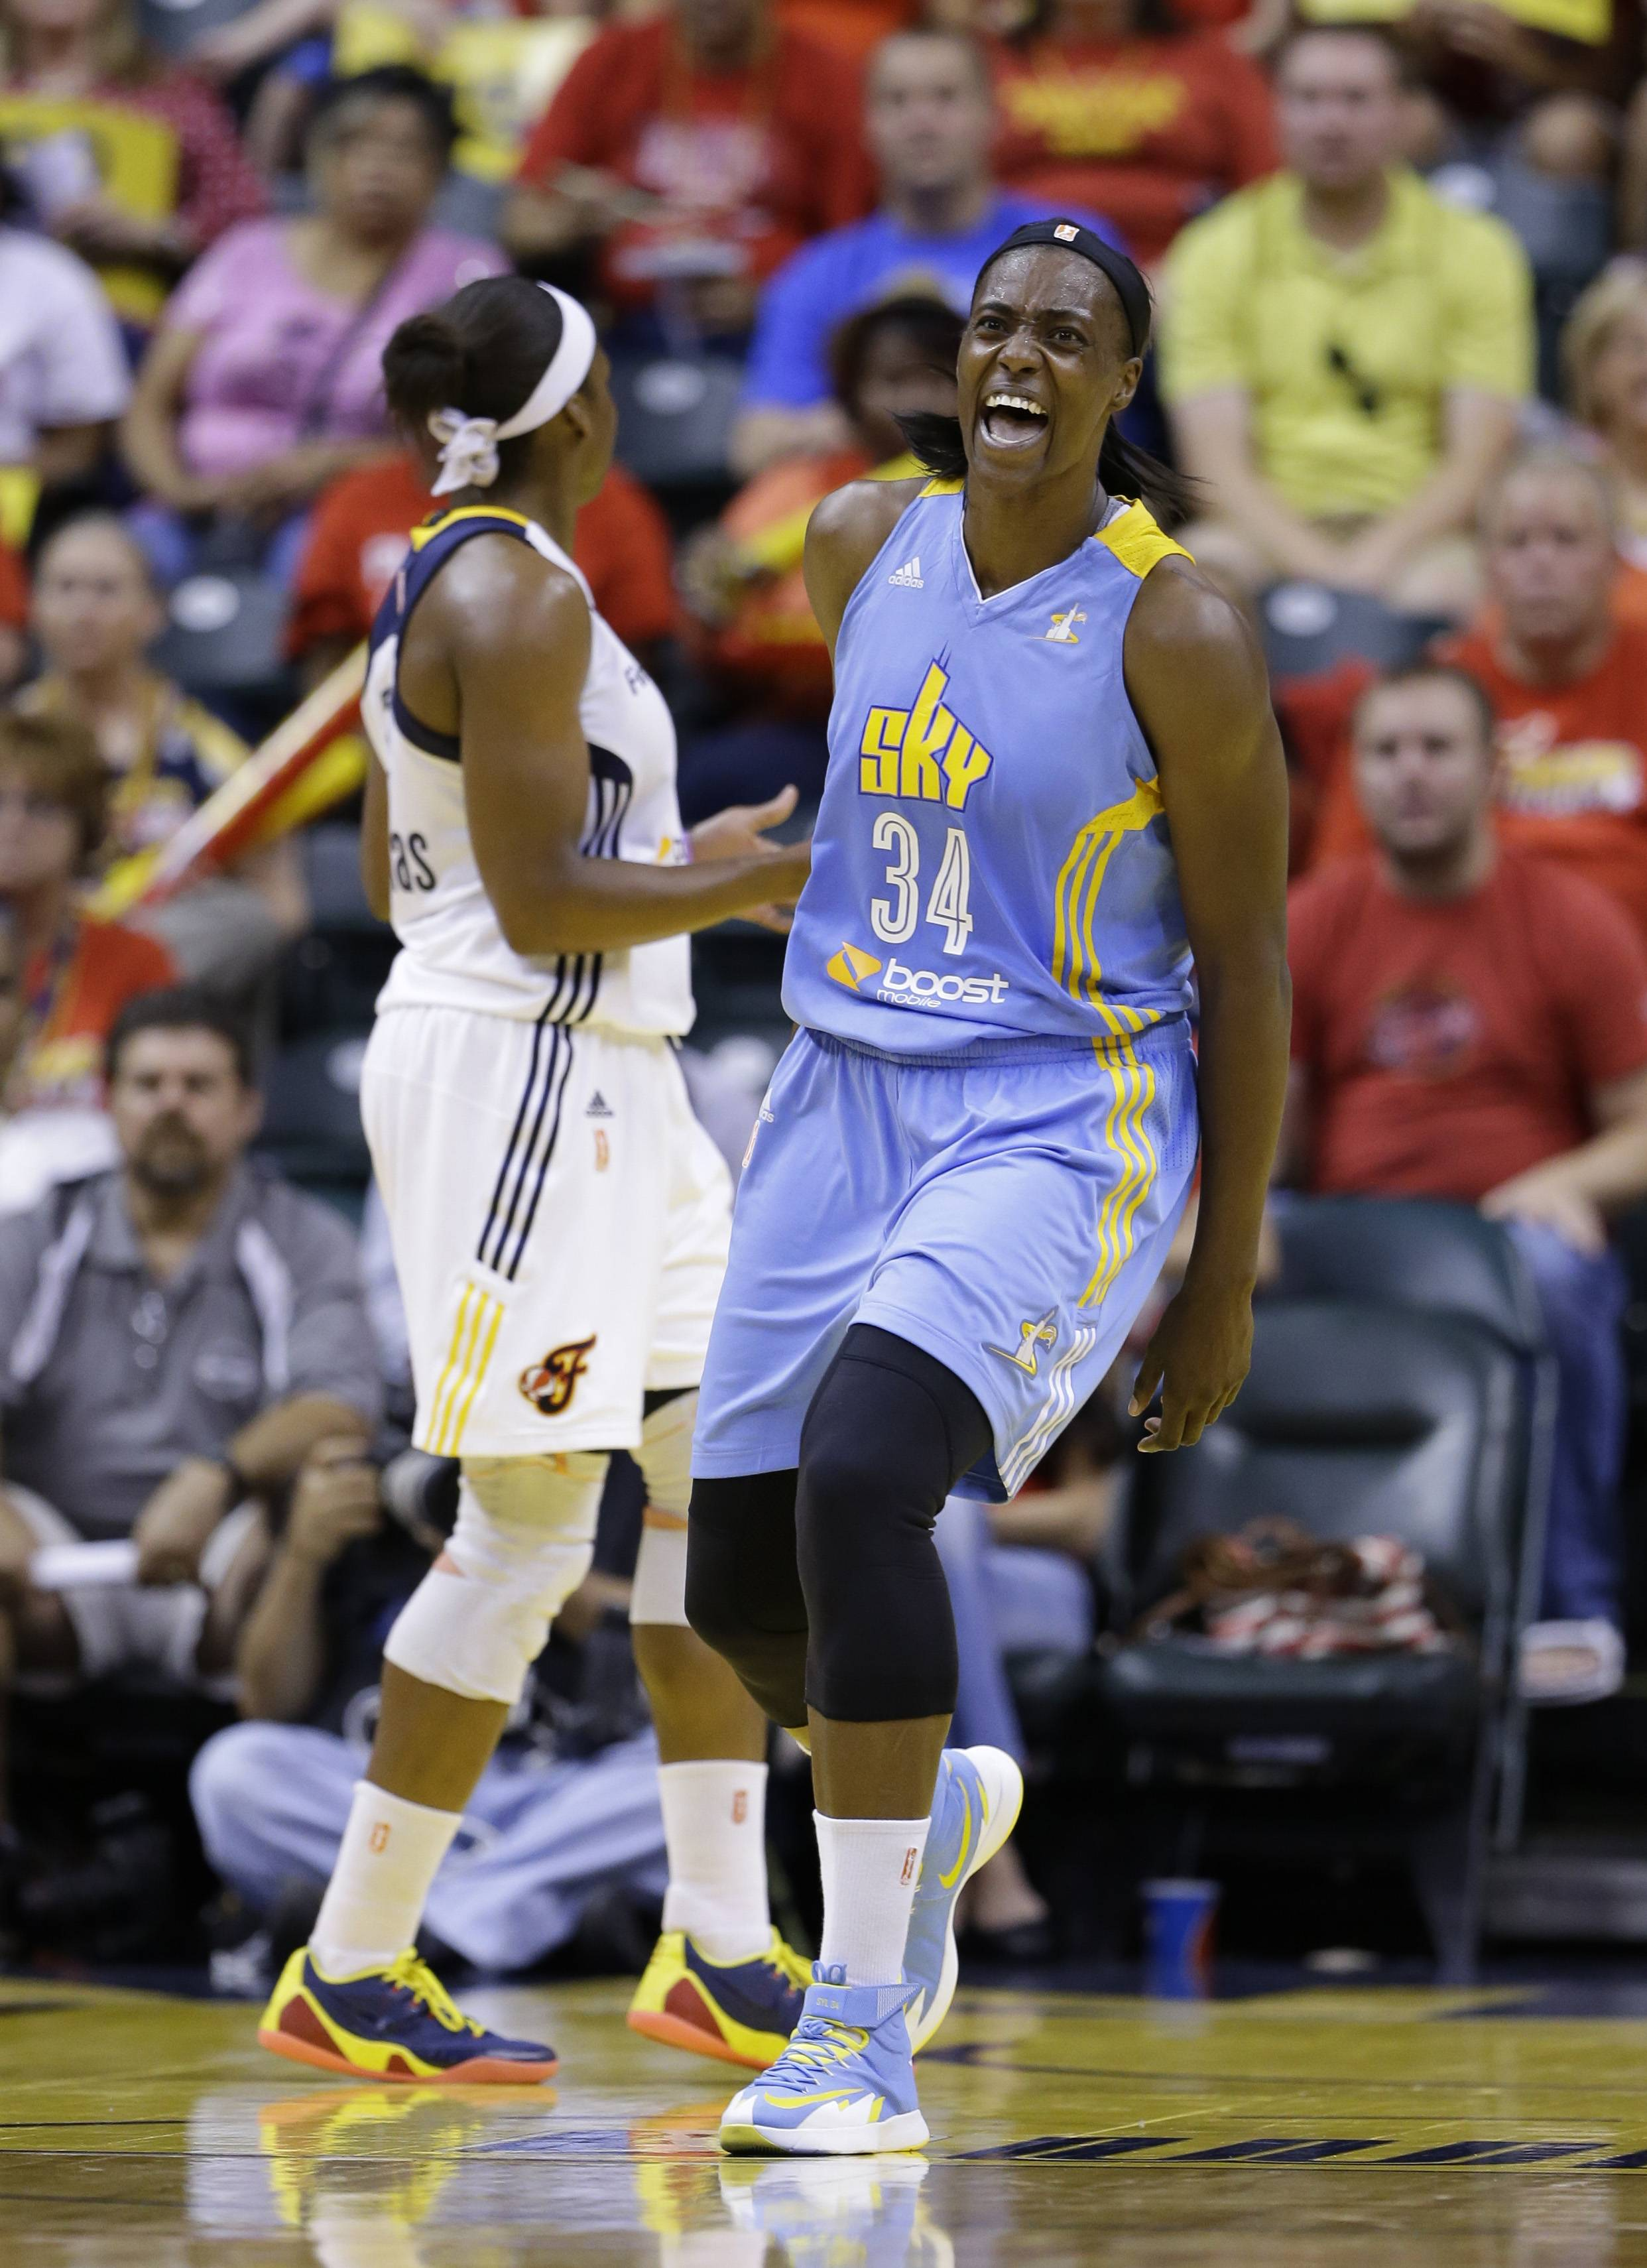 After seven years with the Chicago Sky, all-star center Sylvia Fowles (34) will play in the WNBA Finals. The Sky travels to Phoenix to take on the Mercury on Sunday in Game 1.